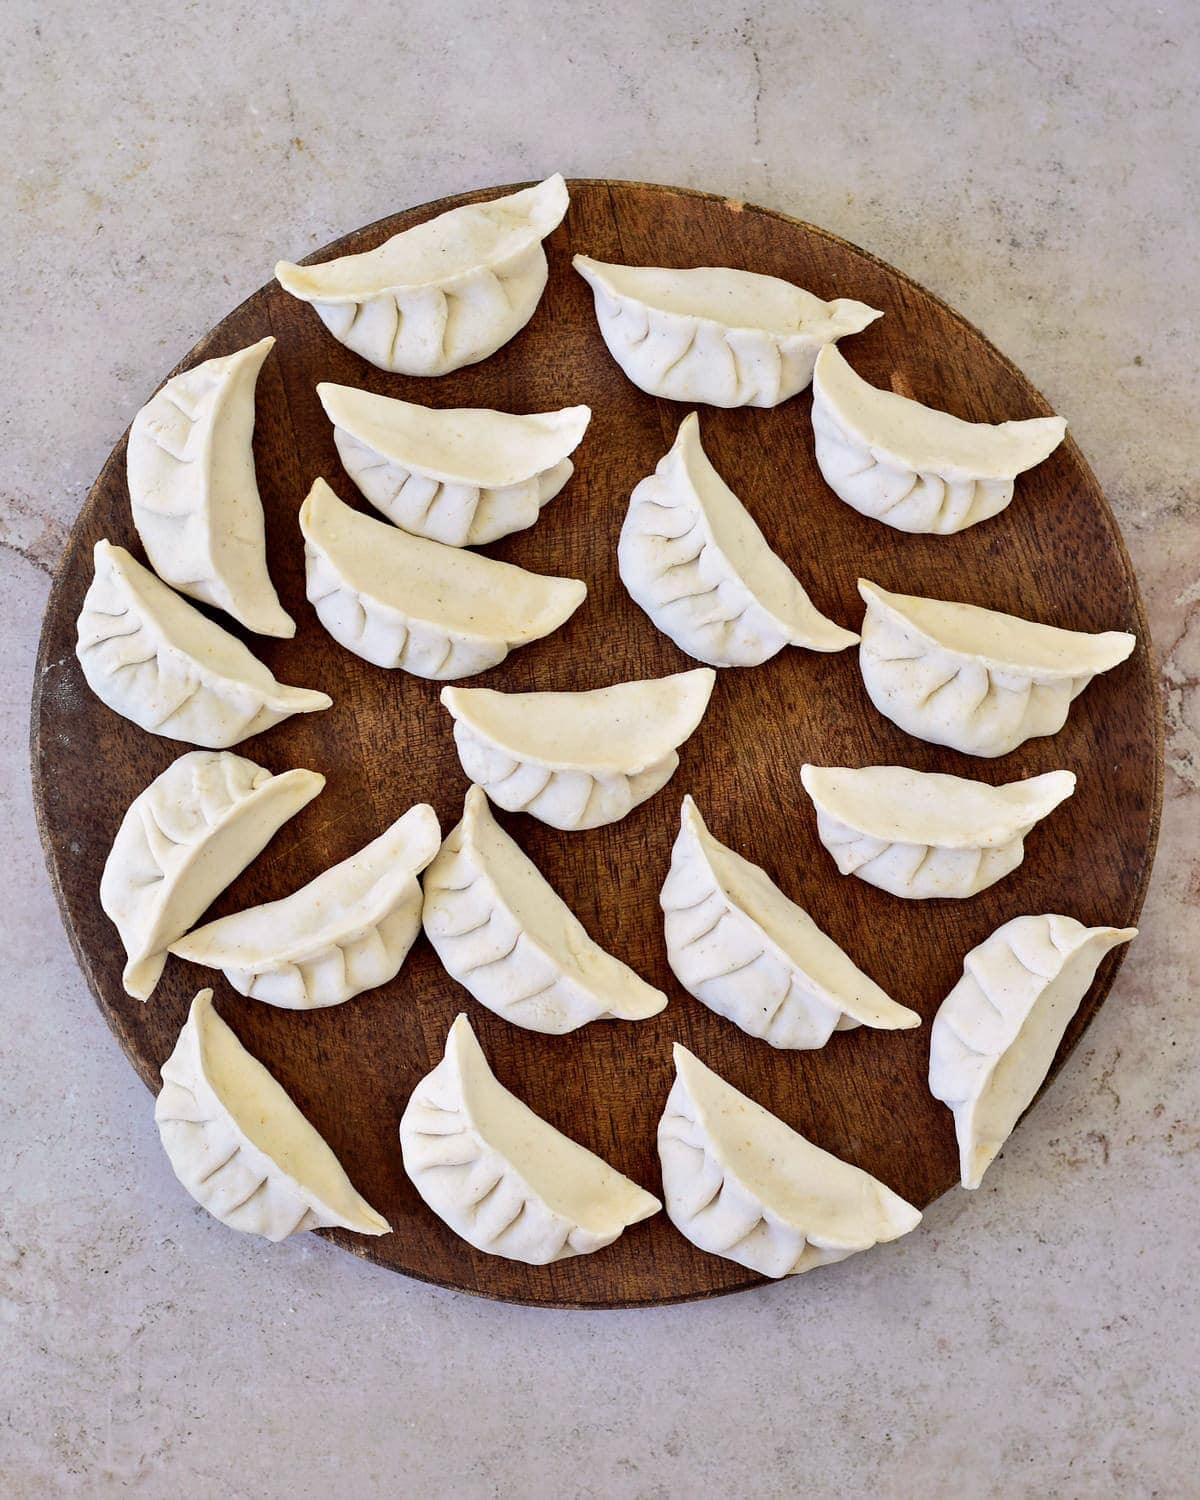 pleated Gyoza or Potstickers on wooden board